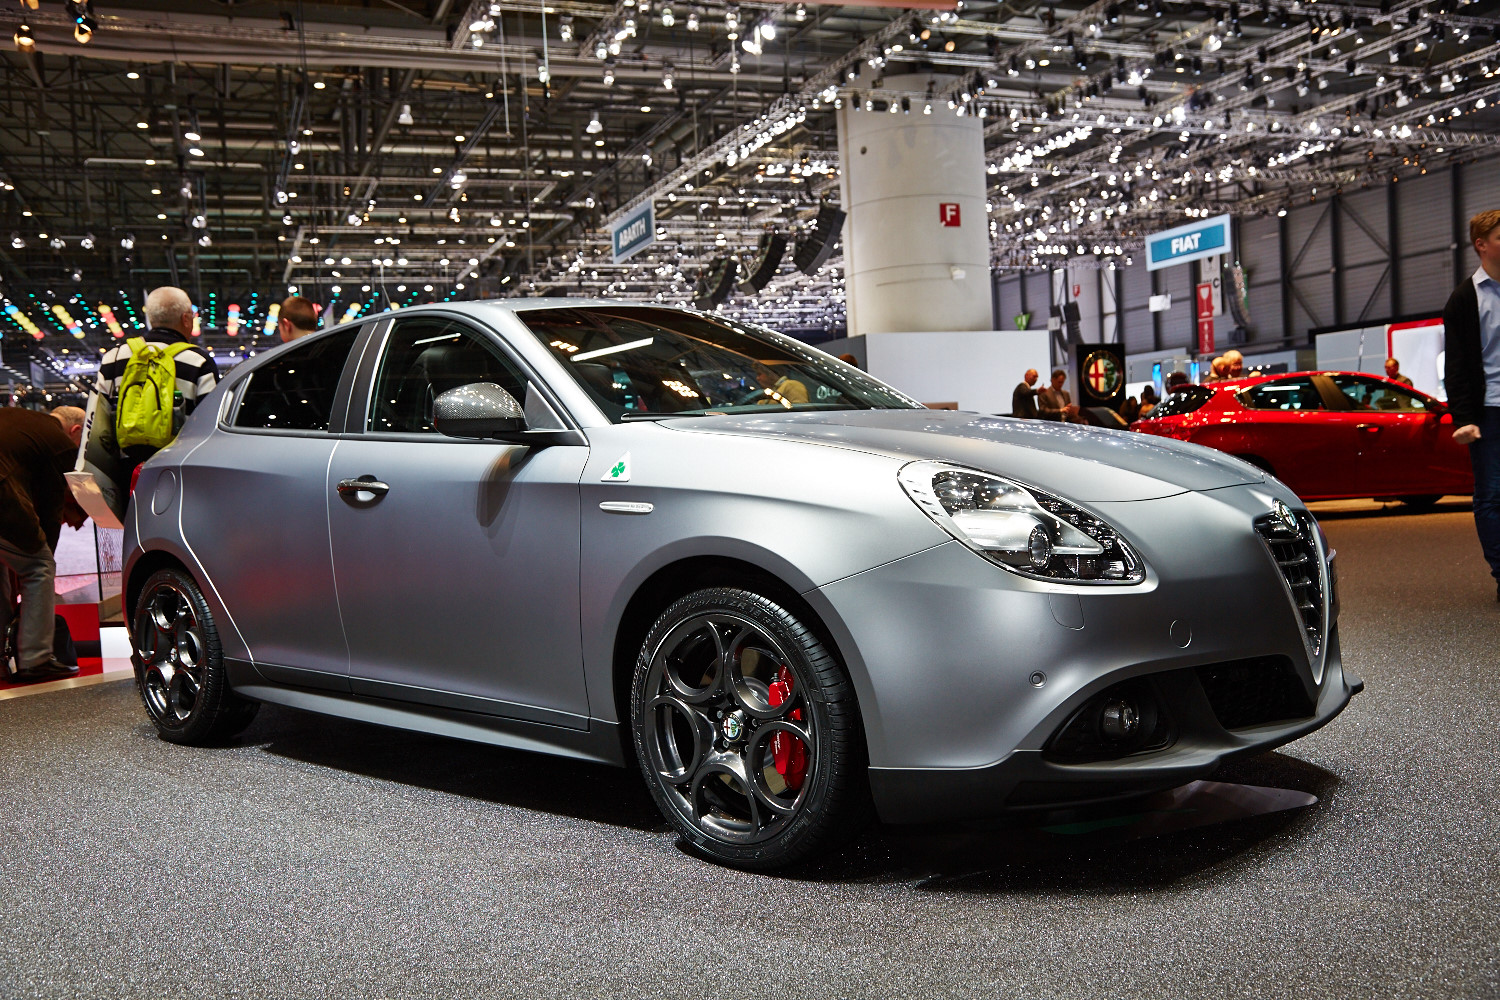 alfa romeo giulietta qv gets 4c 39 s 240 hp powertrain. Black Bedroom Furniture Sets. Home Design Ideas